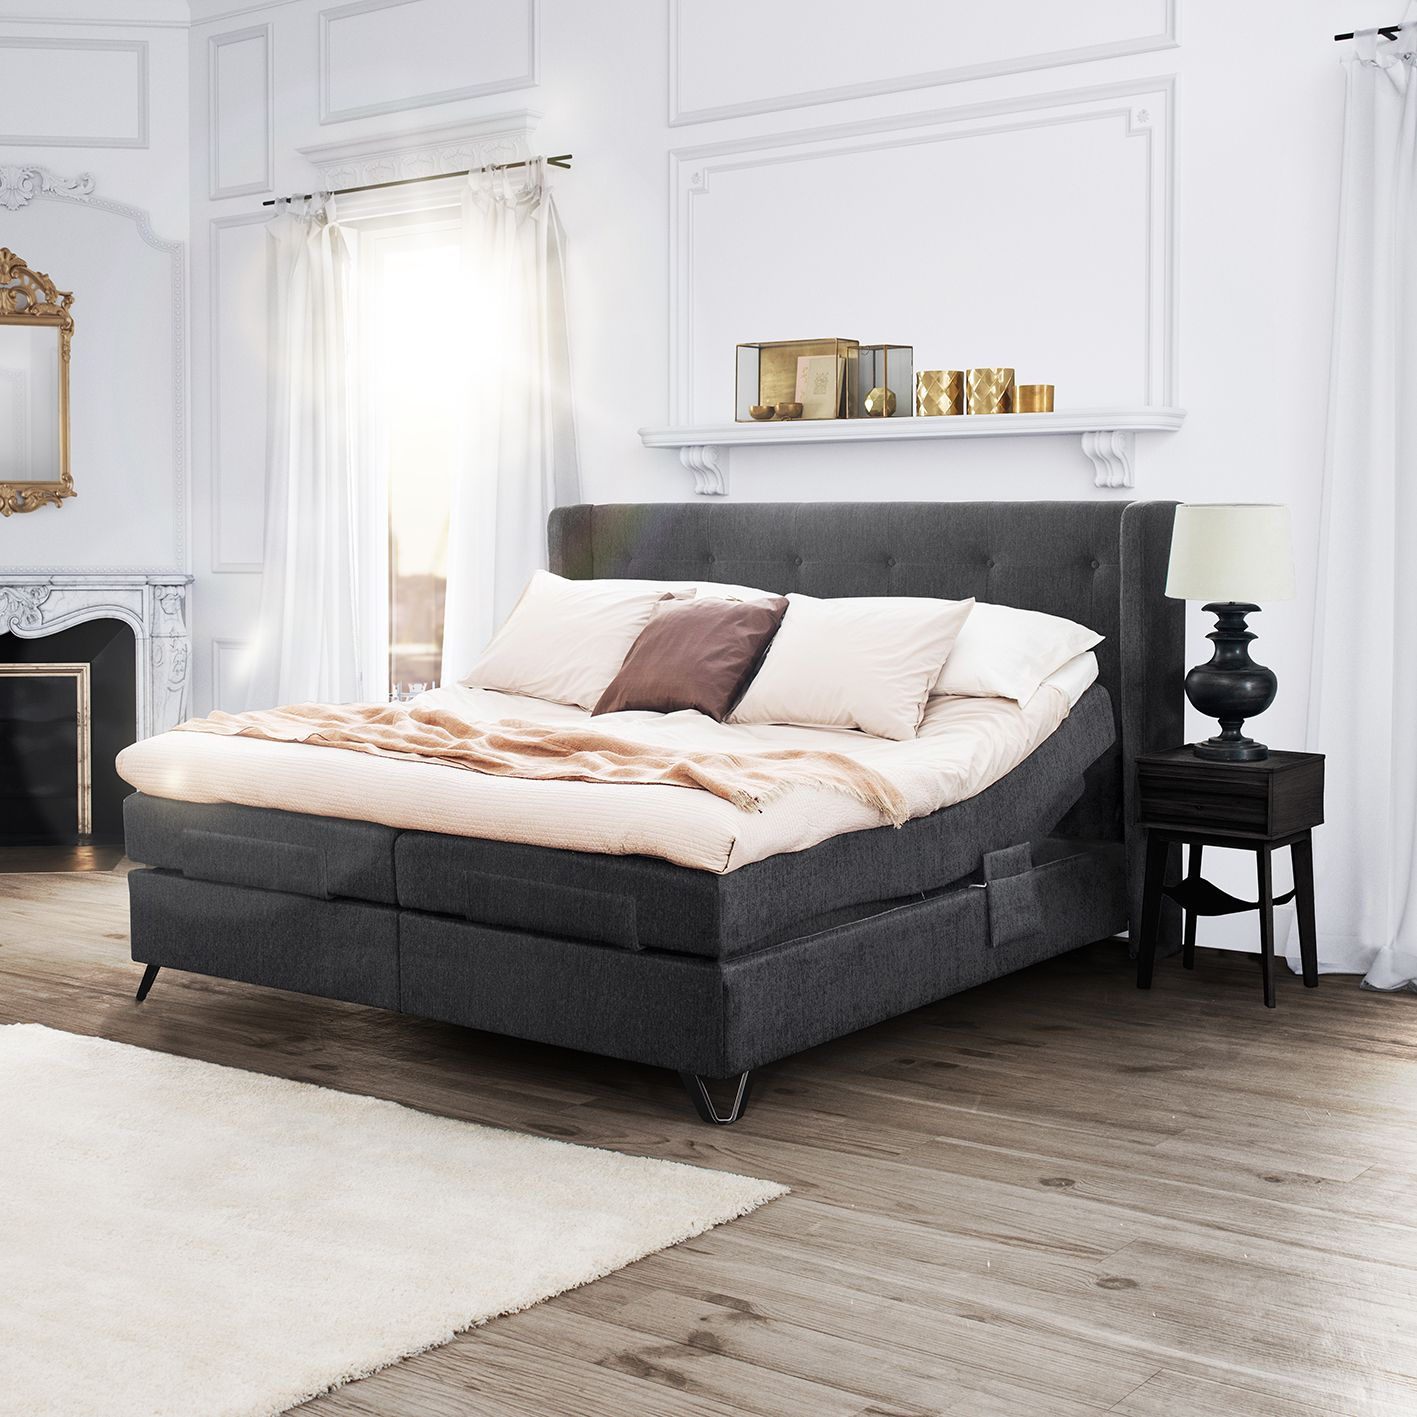 Jensen Aqtive Ii Is An Elegant Adjustable Bed That Looks Like A